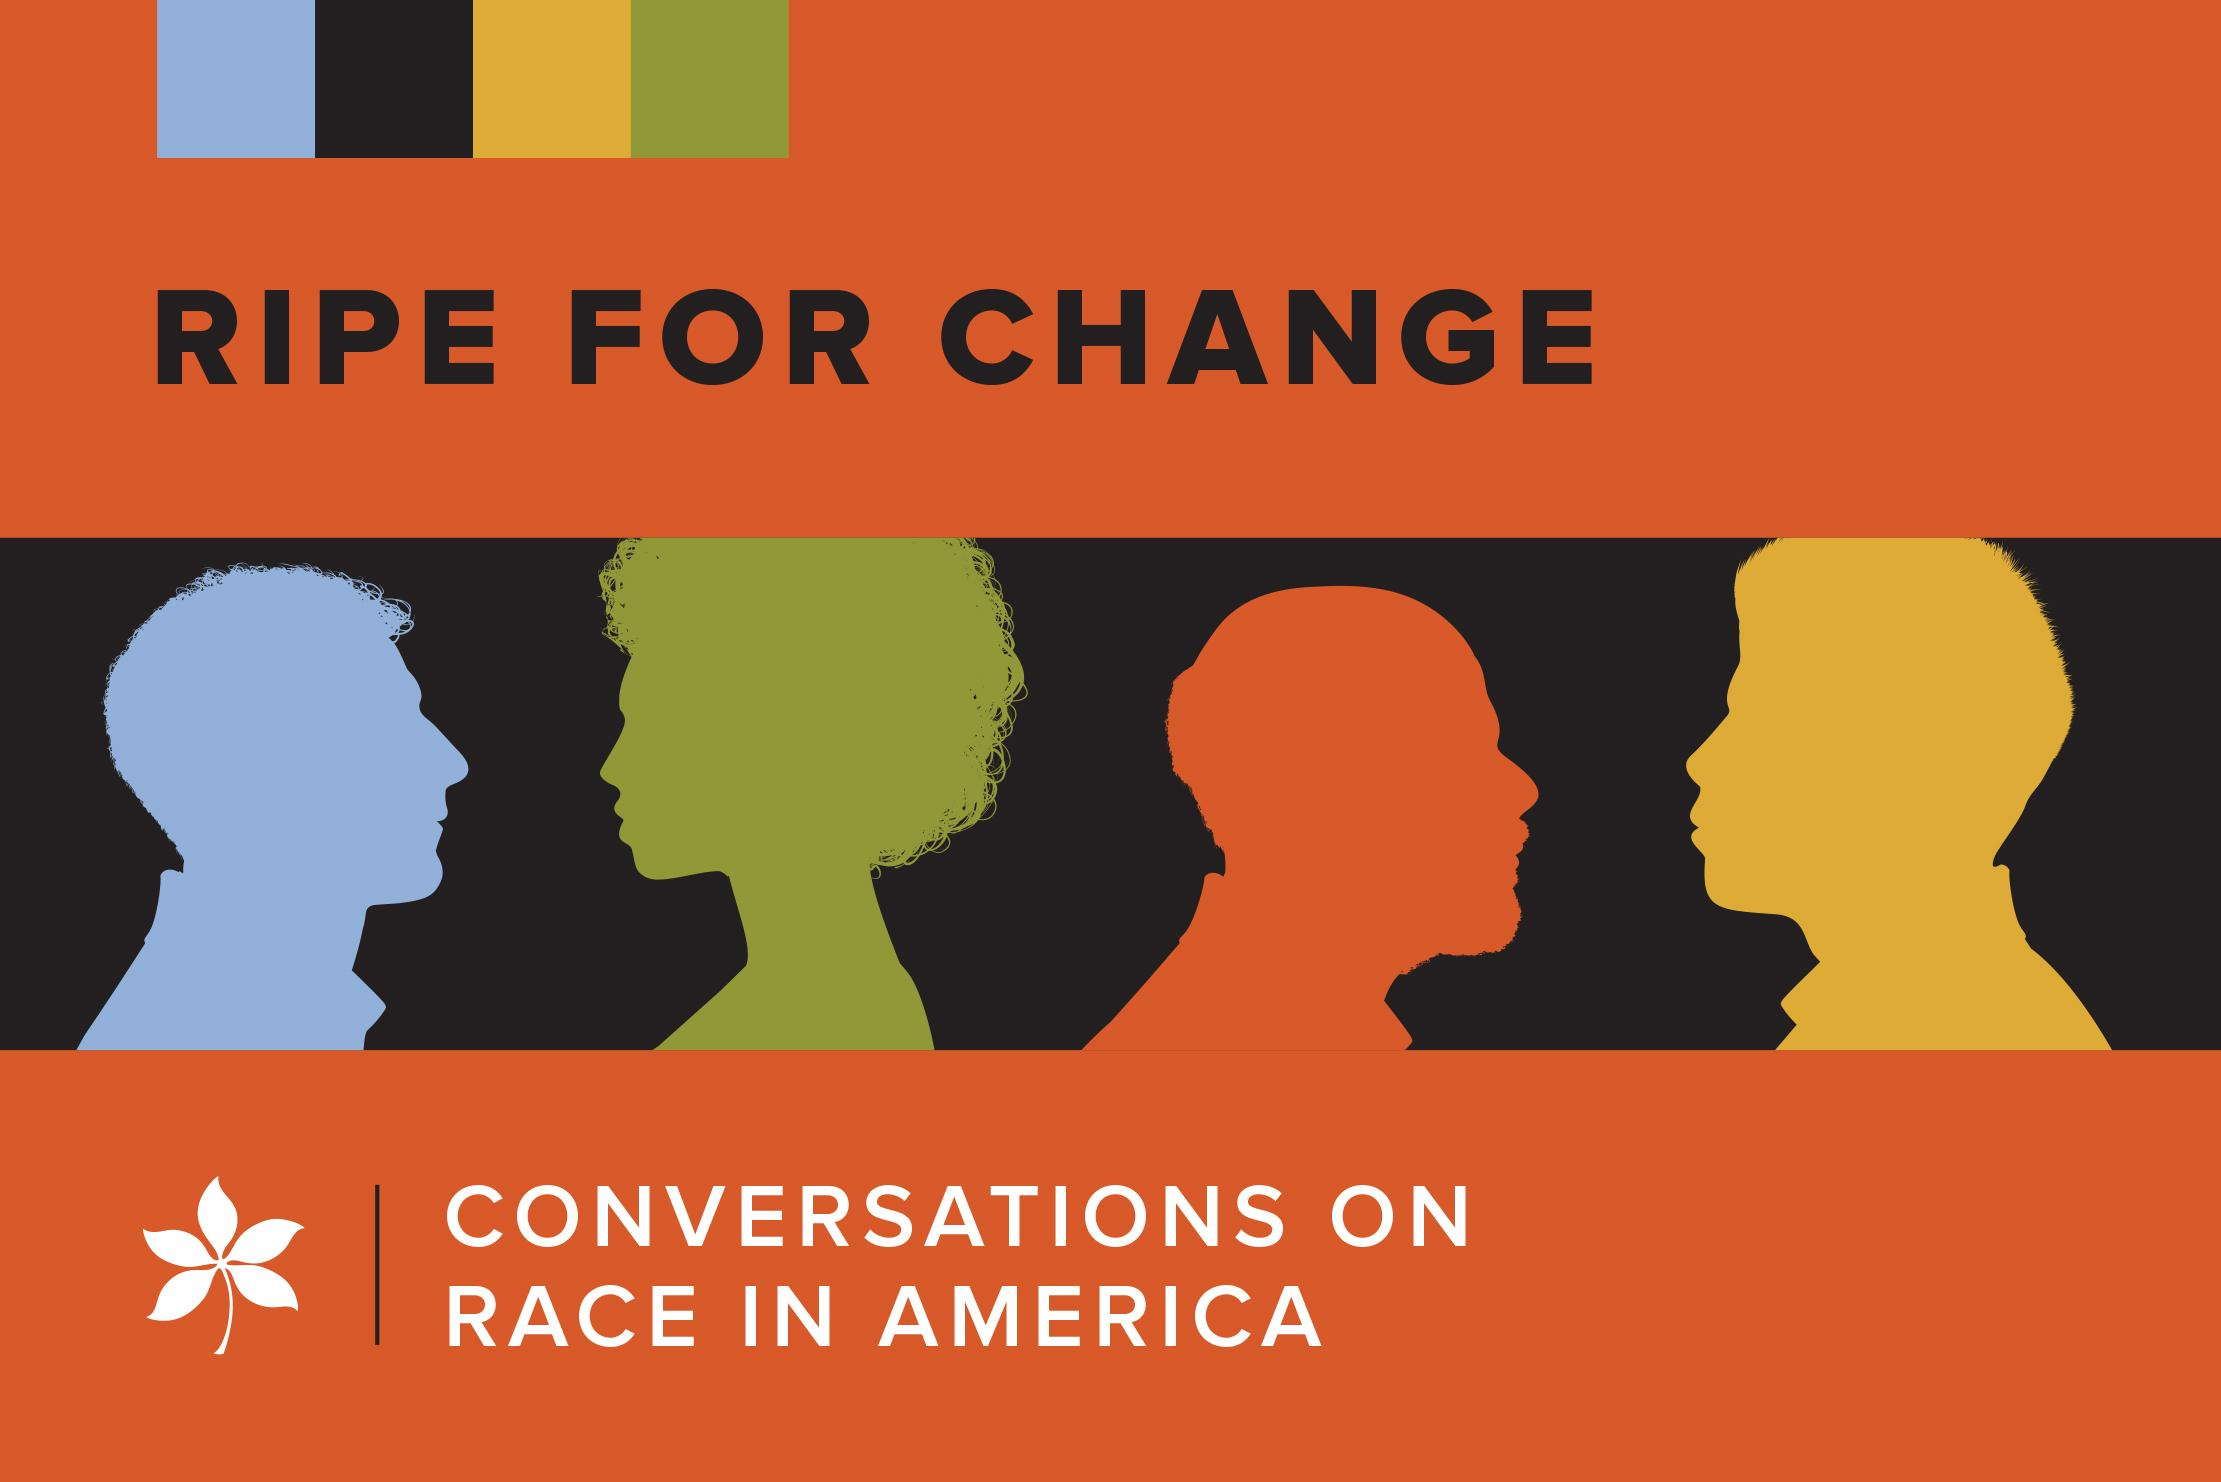 Ripe for change: Conversations on Race in America with colorful faces in profile